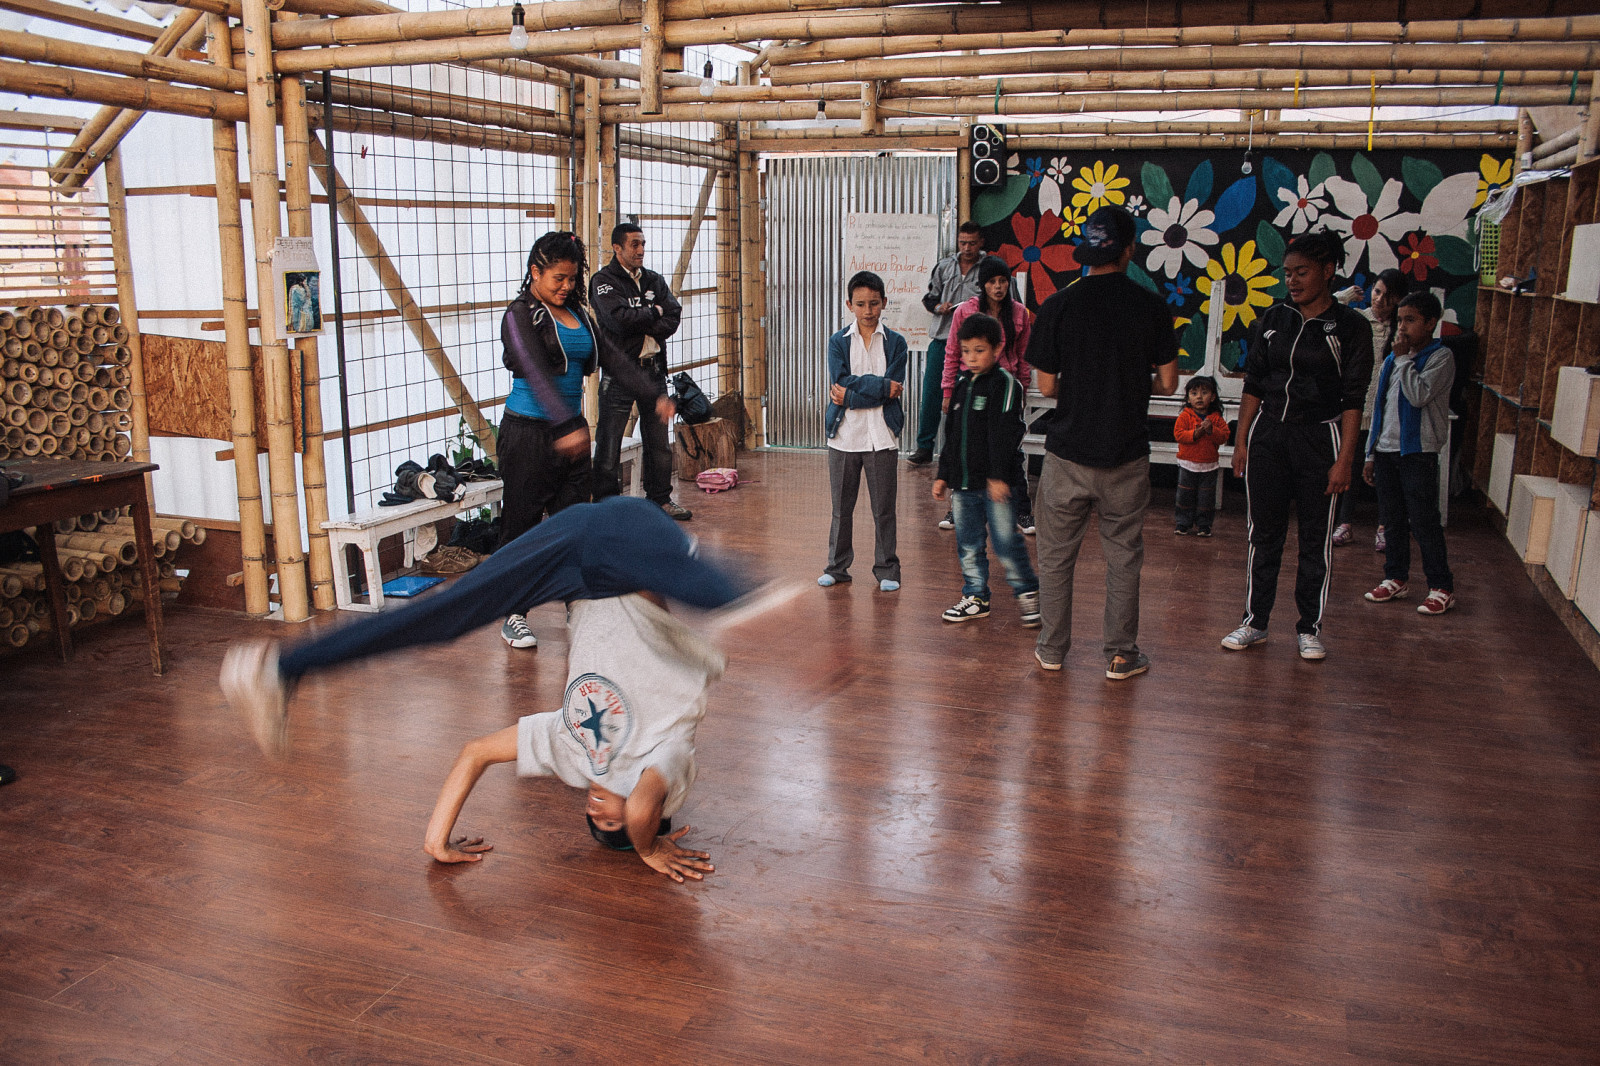 On Tuesdays and Thursdays, youngsters come and practice breakdancing.